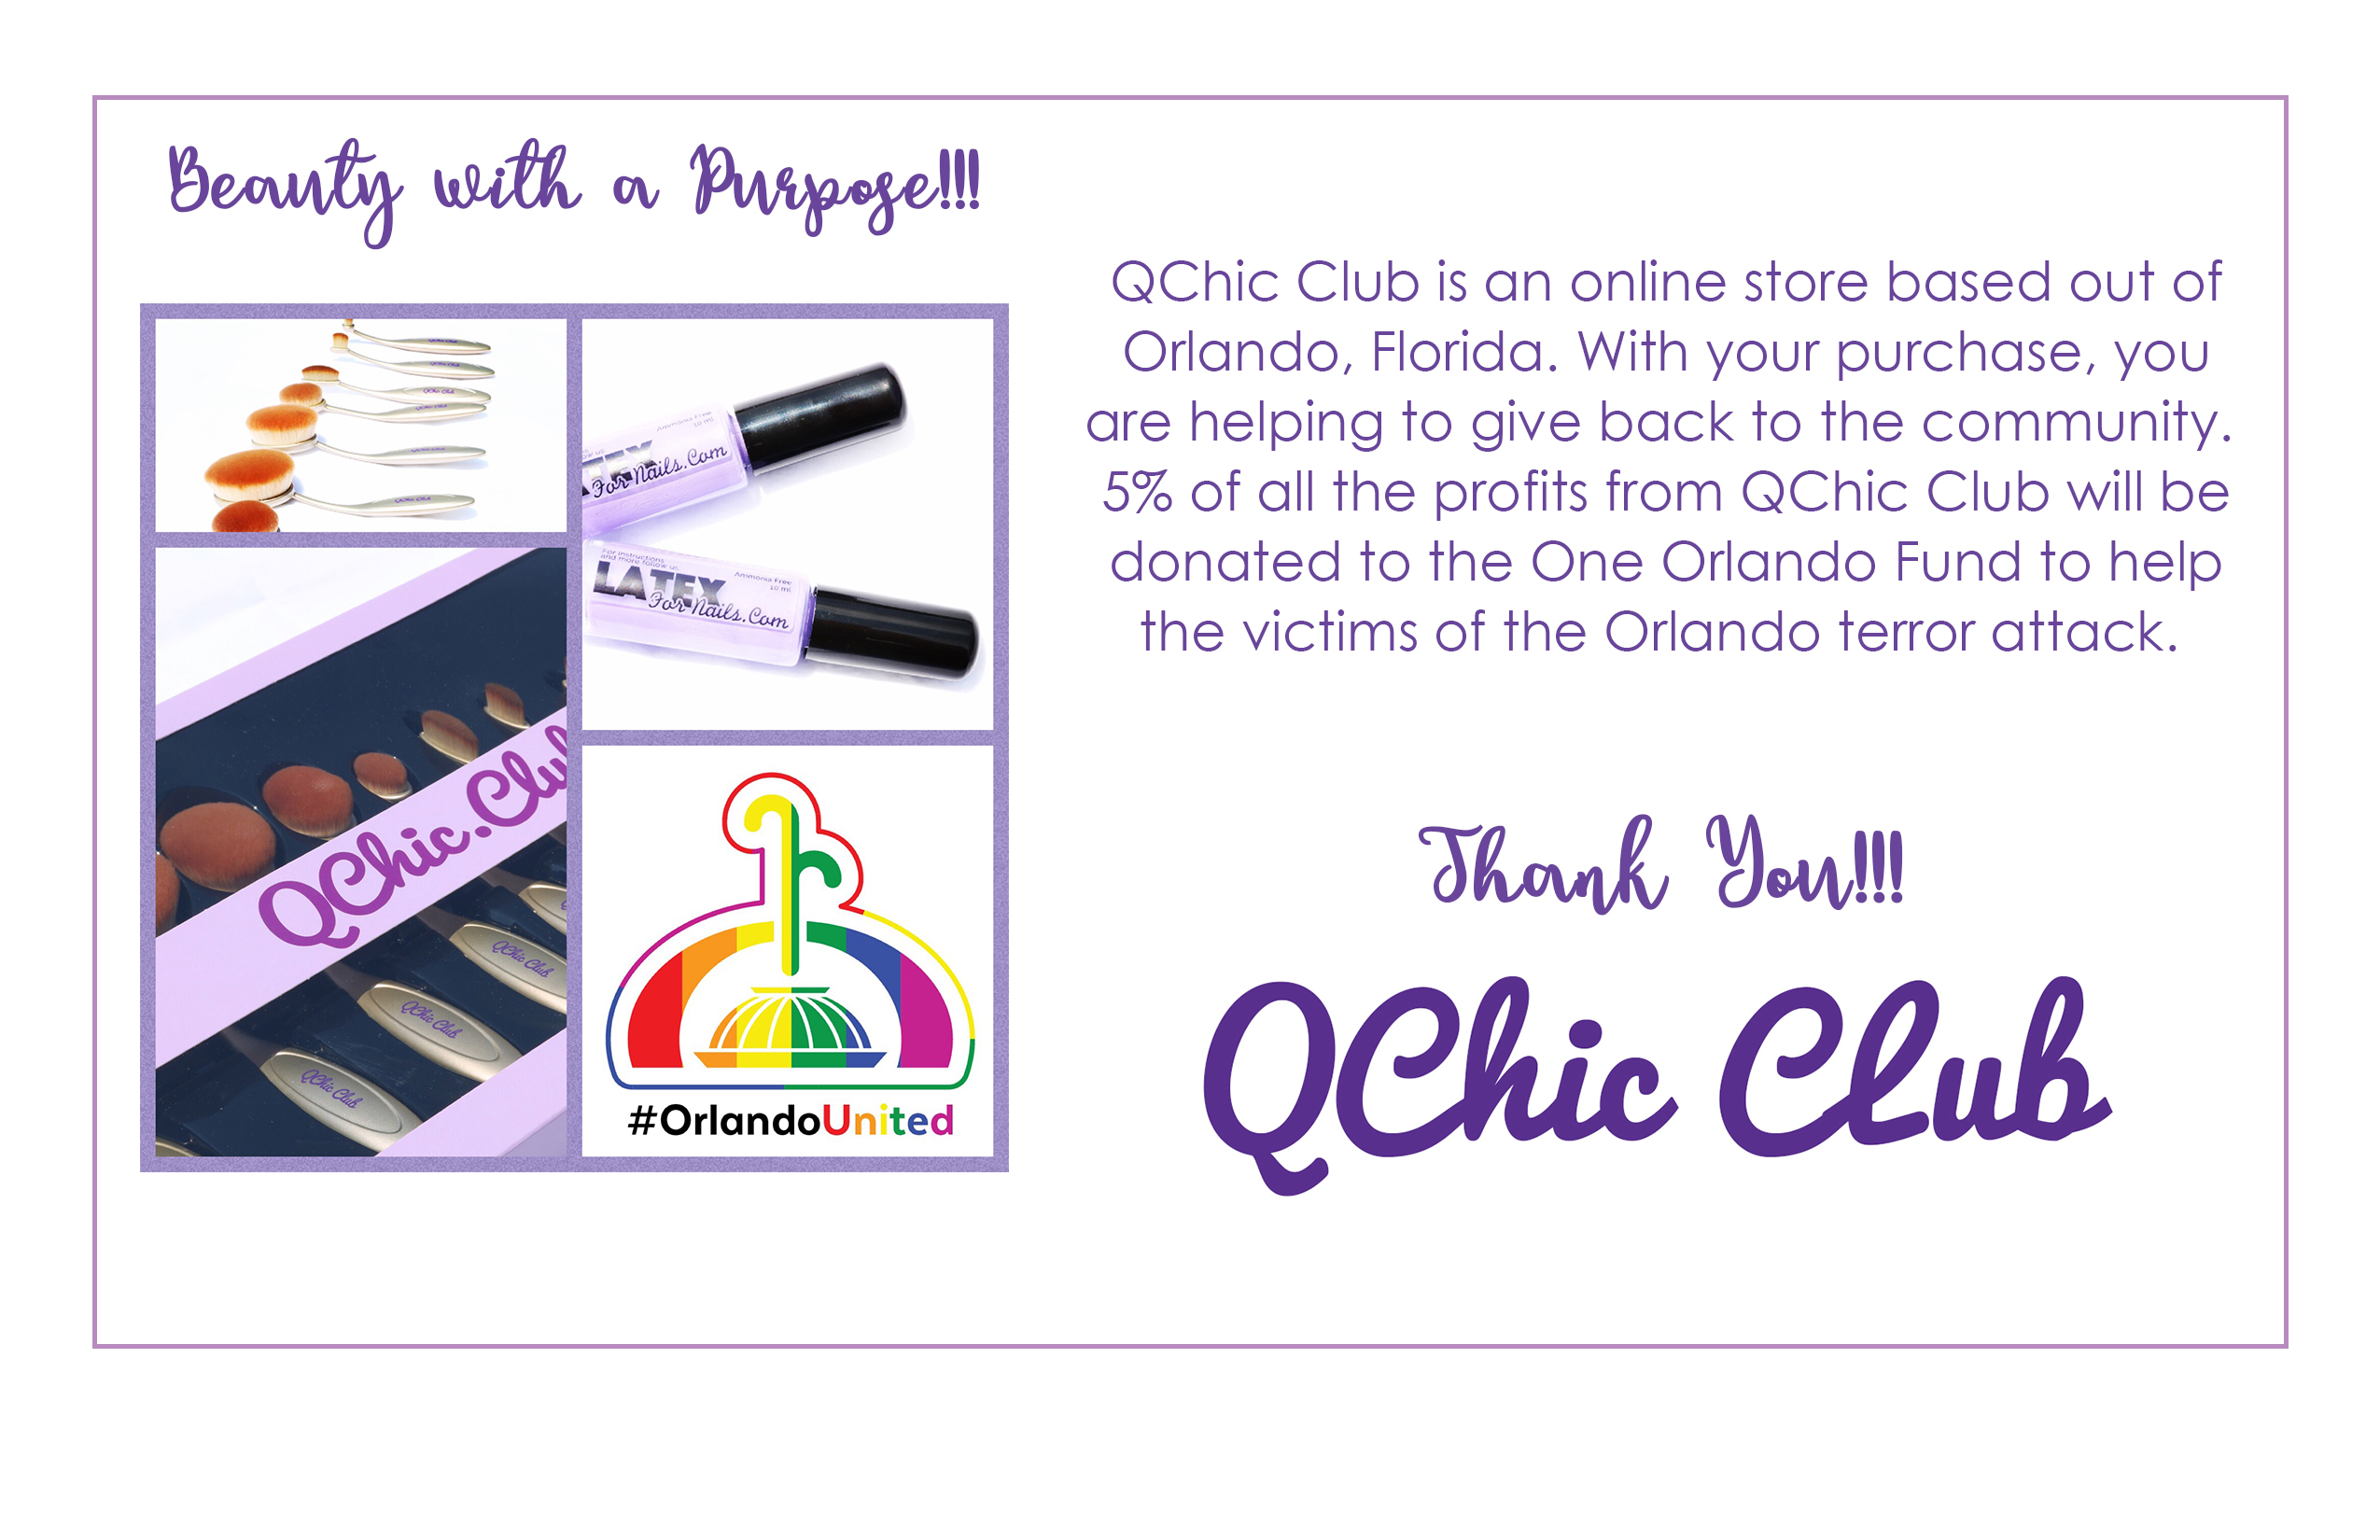 Chic, how to, how to use, how to use oval brushes, Makejup Artist, Makeup Brushes, Makeup trends, Oval Brush Set, Oval Toothbrush shaped makeup brushes, QChic Club, QChic Club Oval Brushes Set, QChic oval Brushes, qchicovalbrushes, Trending, Unboxing